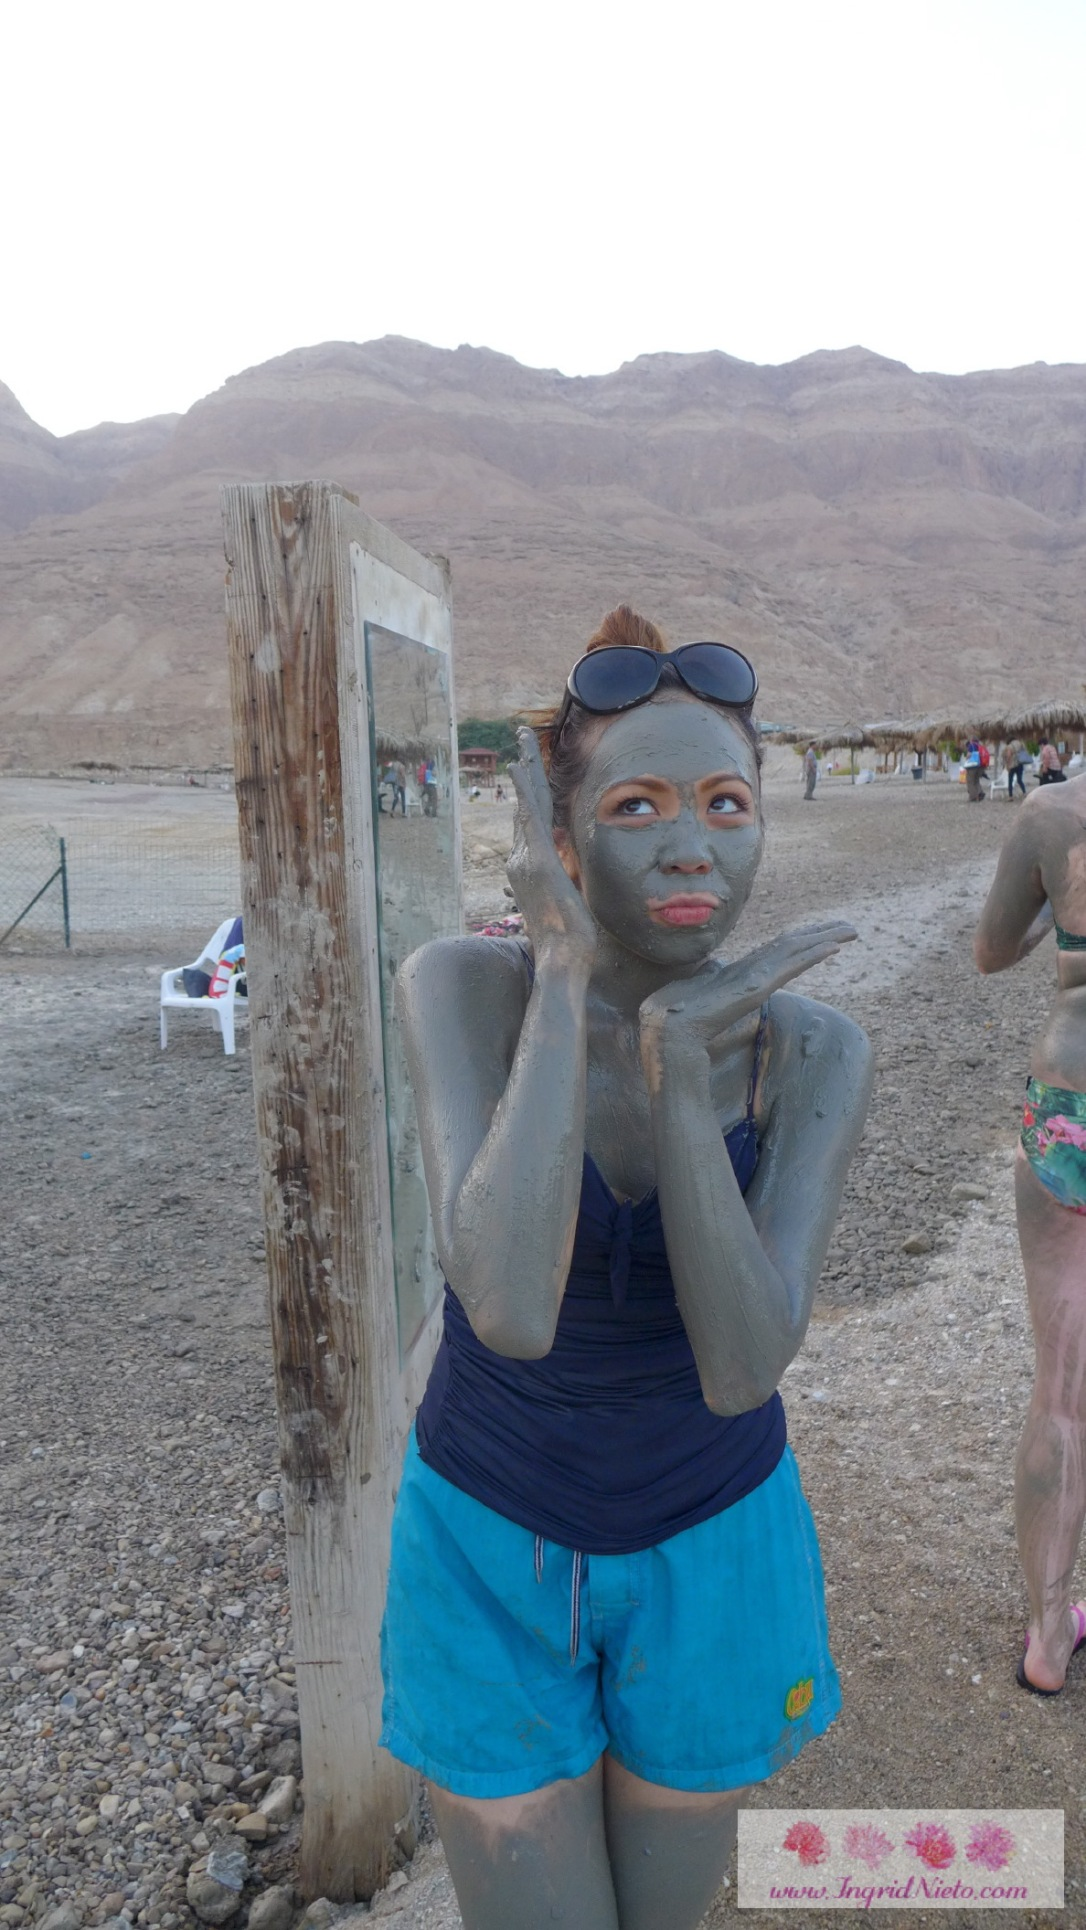 Of course I had to try it on. This is one Israel experience I won't forget! I had the mask on for about 15-20 minutes (we only had an hour to spend). My skin was baby-smooth and lovely to touch when I washed it off! Imagine if I left it on for about 30 minutes!